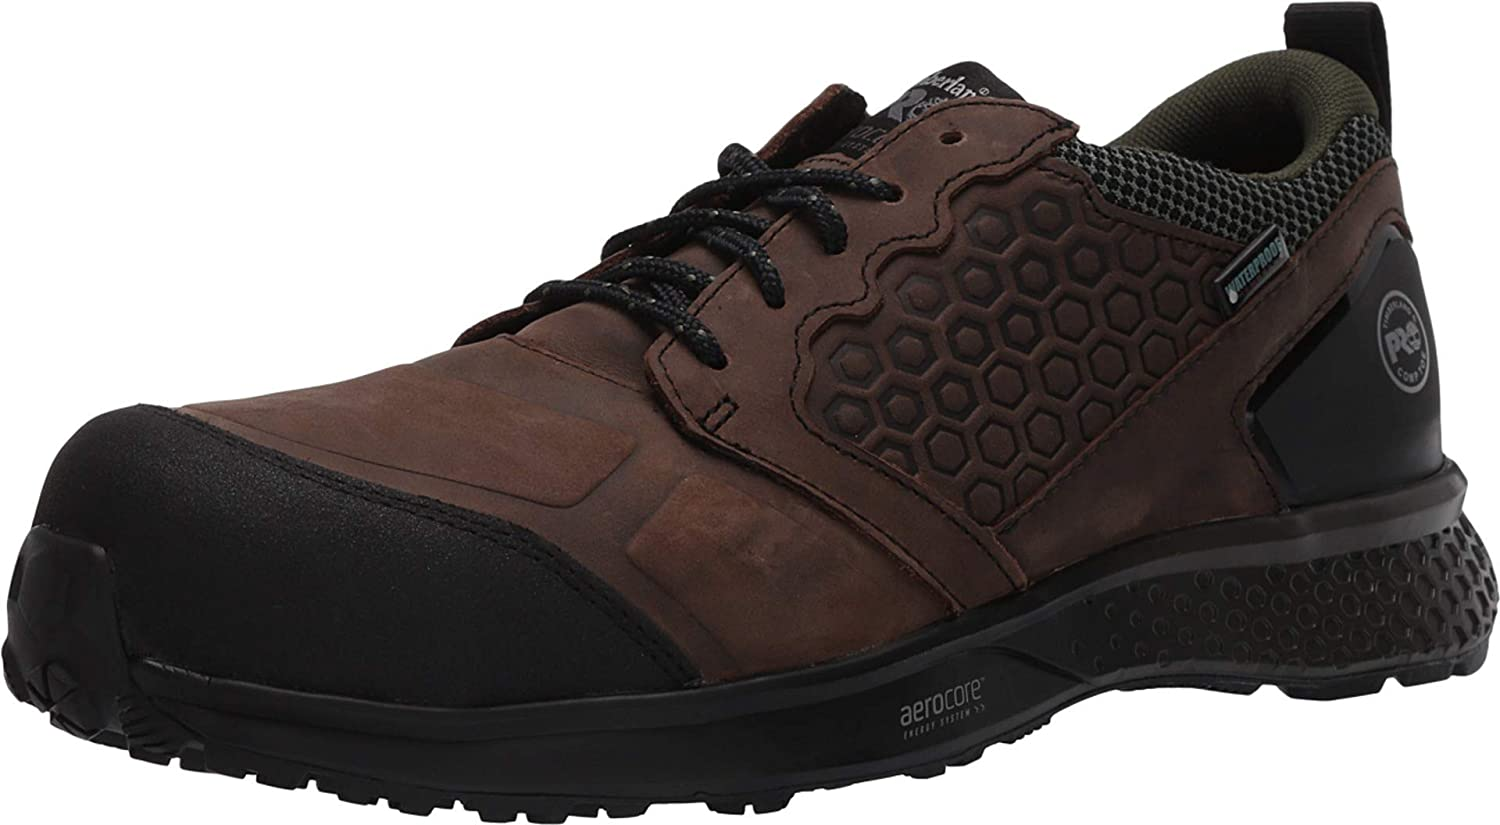 Timberland PRO Reaxion Composite Safety Toe Waterproof Brown/Green 8